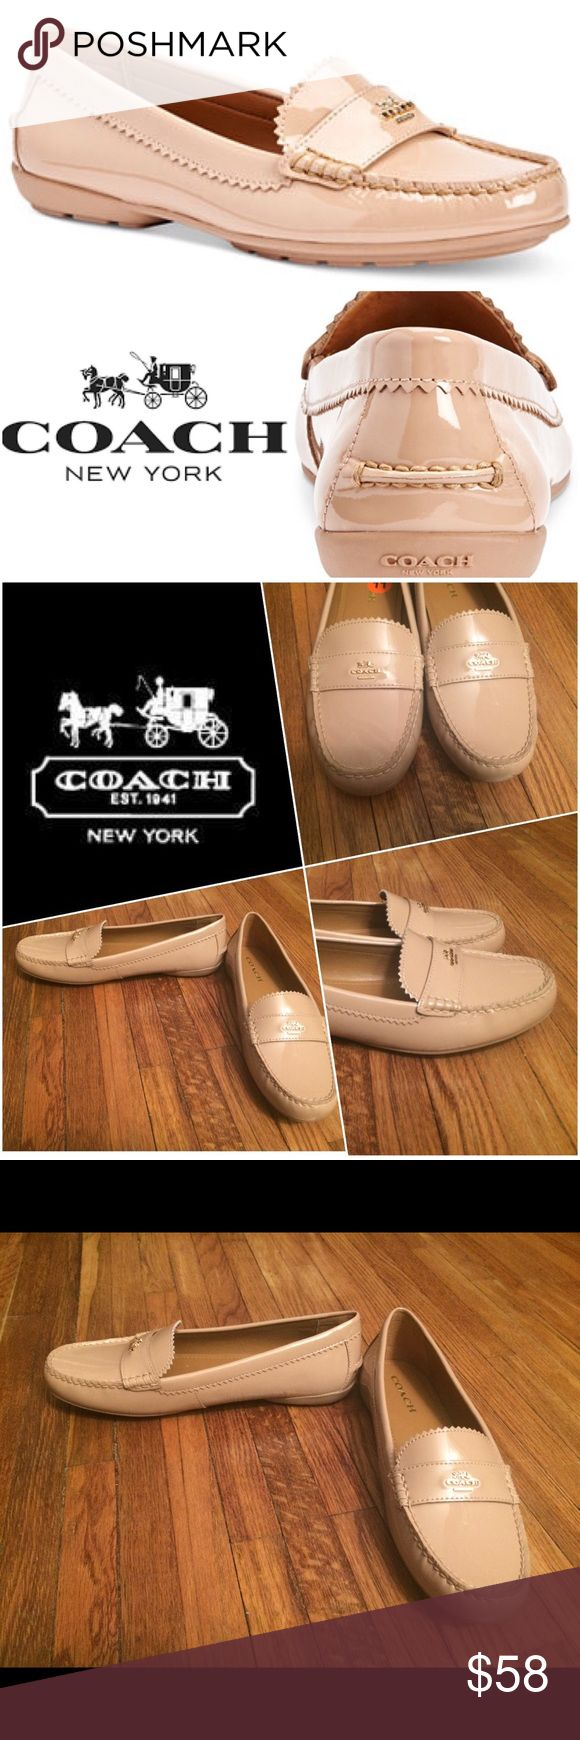 NEW Coach Tan Loafers Size 11 New with tags, patented leather Tan Coach Loafers, adorable & comfy! Originally bought for a client, I'm currently cleaning out my client closets. Open to offers, especially on bundles. With 3 or more items from my closet I give 15% off & I price all my items lower to accommodate for shipping cost. You pay the same for shipping regardless of if you buy one item or multiple items from my closet! Your purchase goes towards the non-profit organization I'm…